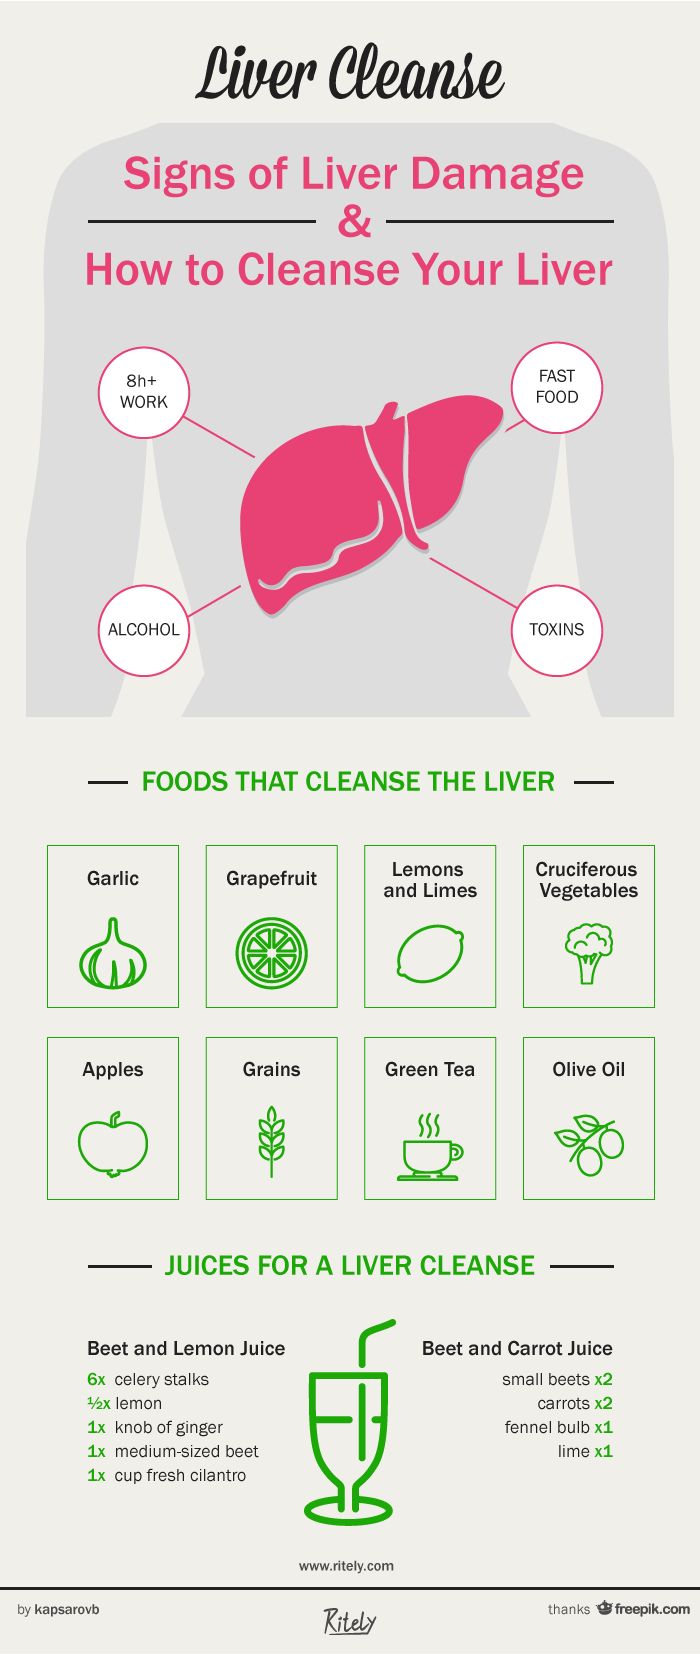 Liver cleanse signs of liver damage and how to cleanse your liver liver cleanse signs of liver damage and how to cleanse your liver ccuart Gallery